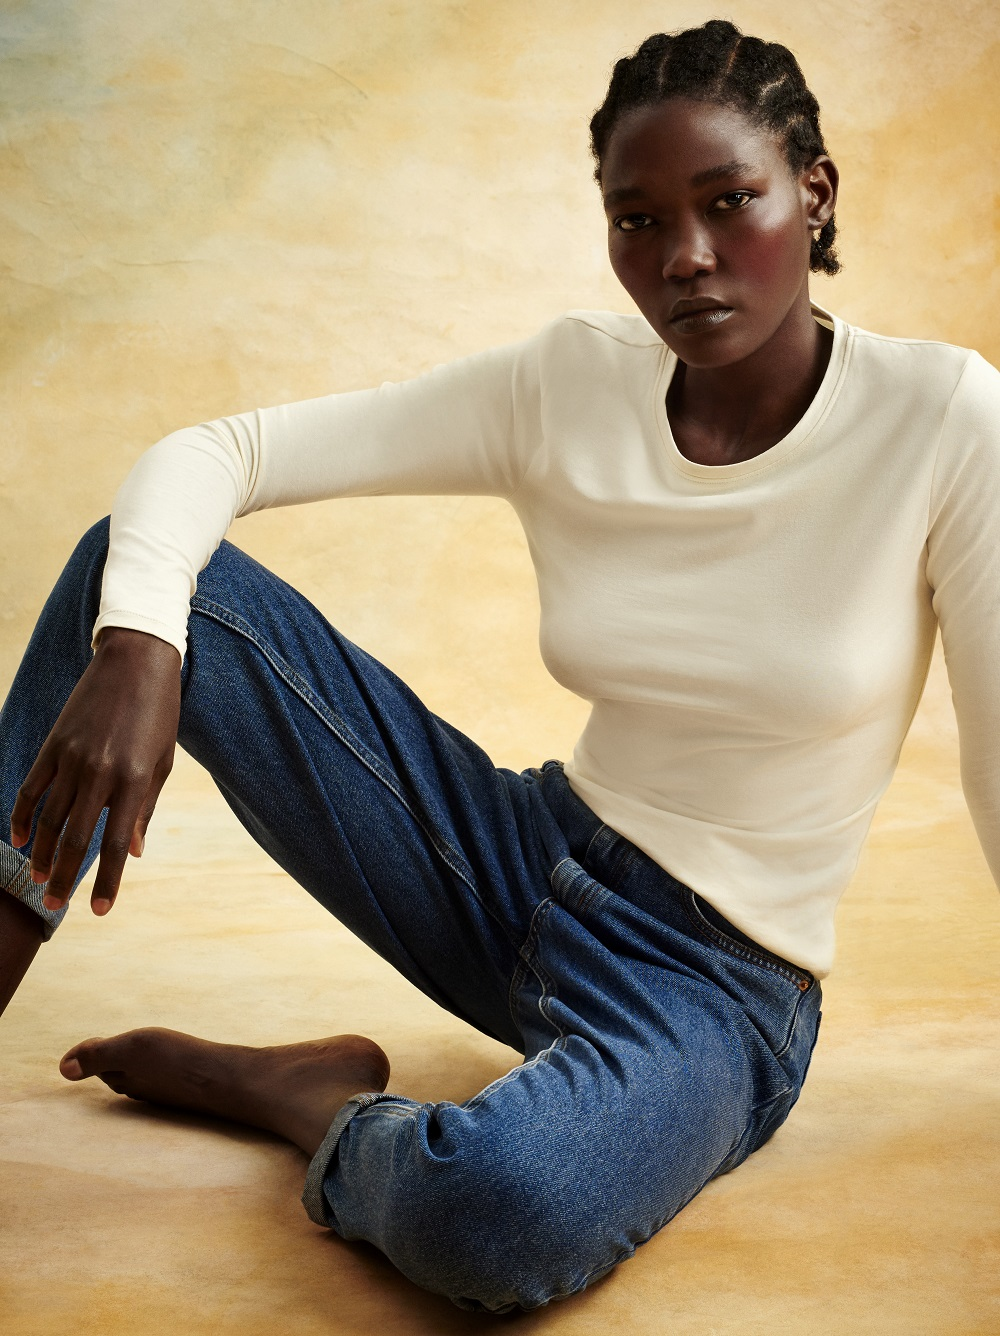 The British fast fashion chain's collection is certified by circular fashion company Recover, which aims to close the loop on fashion.